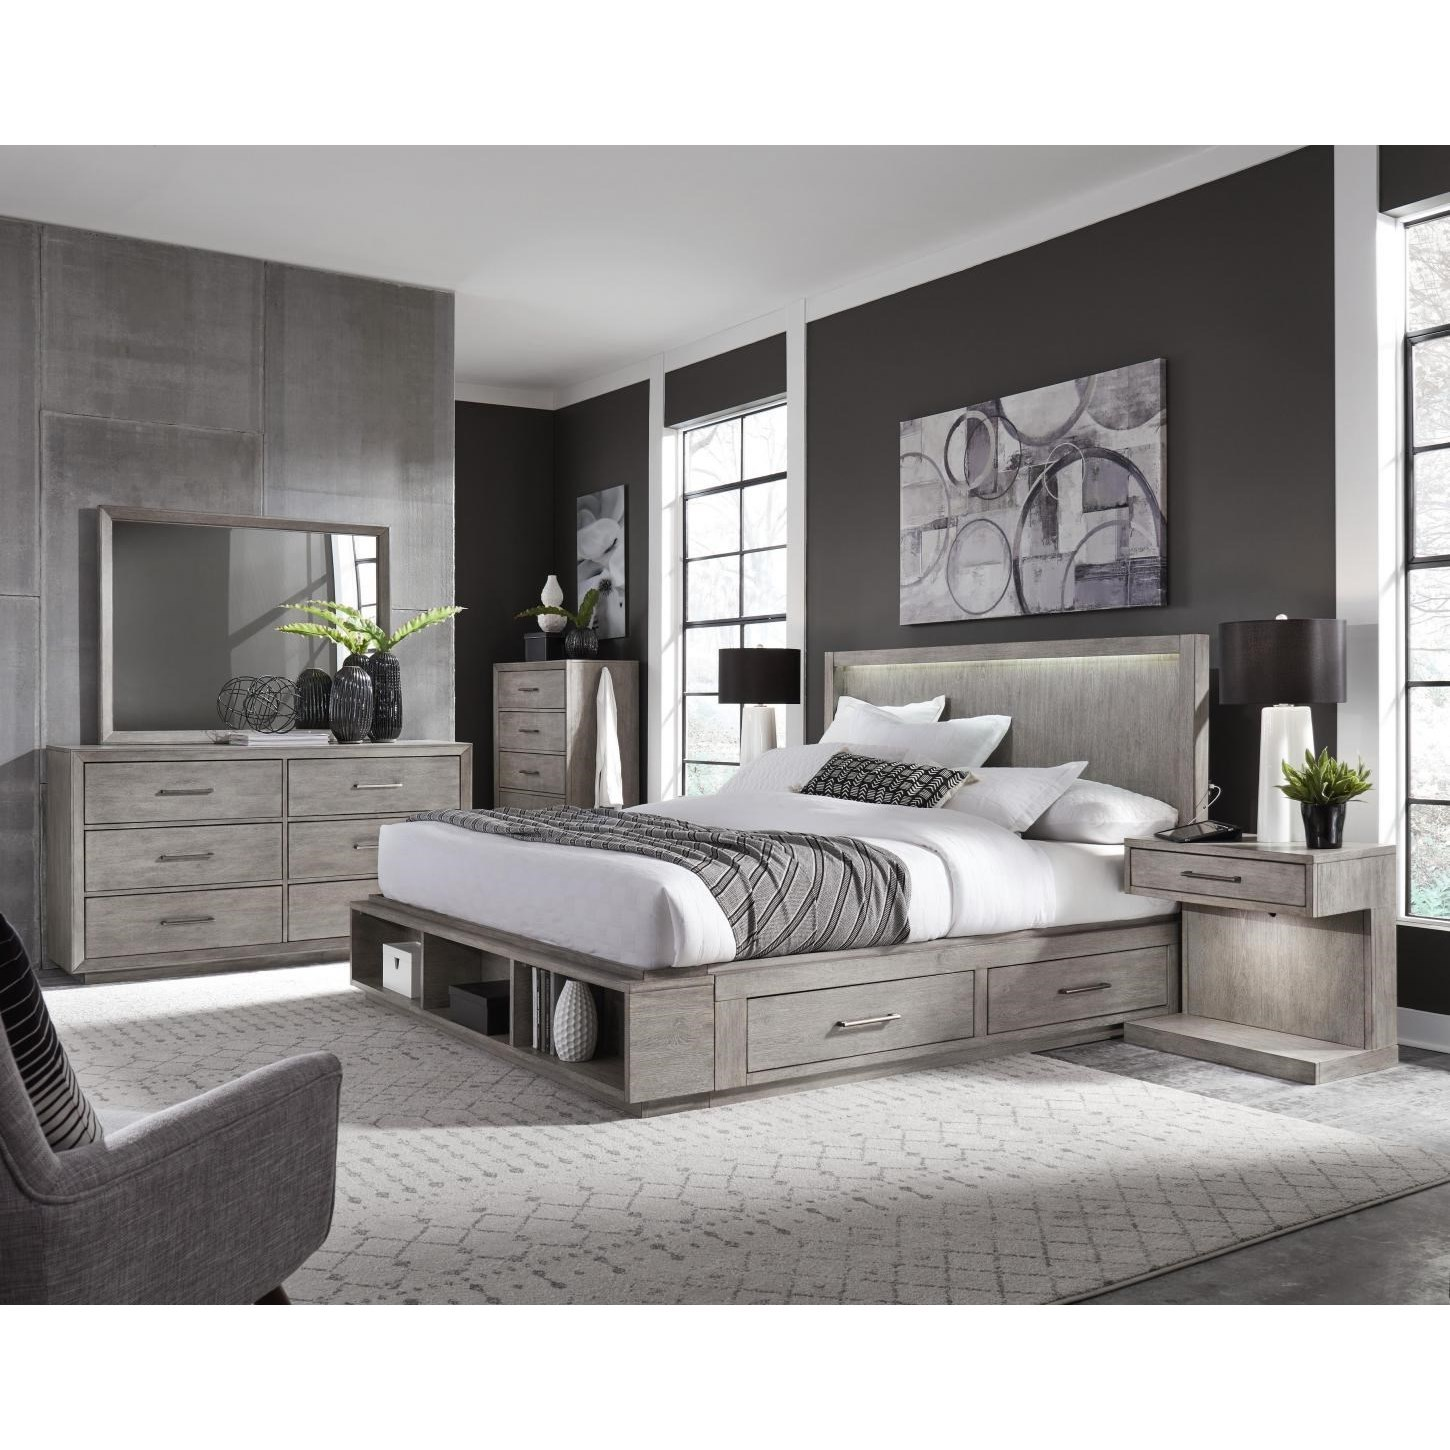 Platinum Queen Bedroom Group by Aspenhome at Baer's Furniture